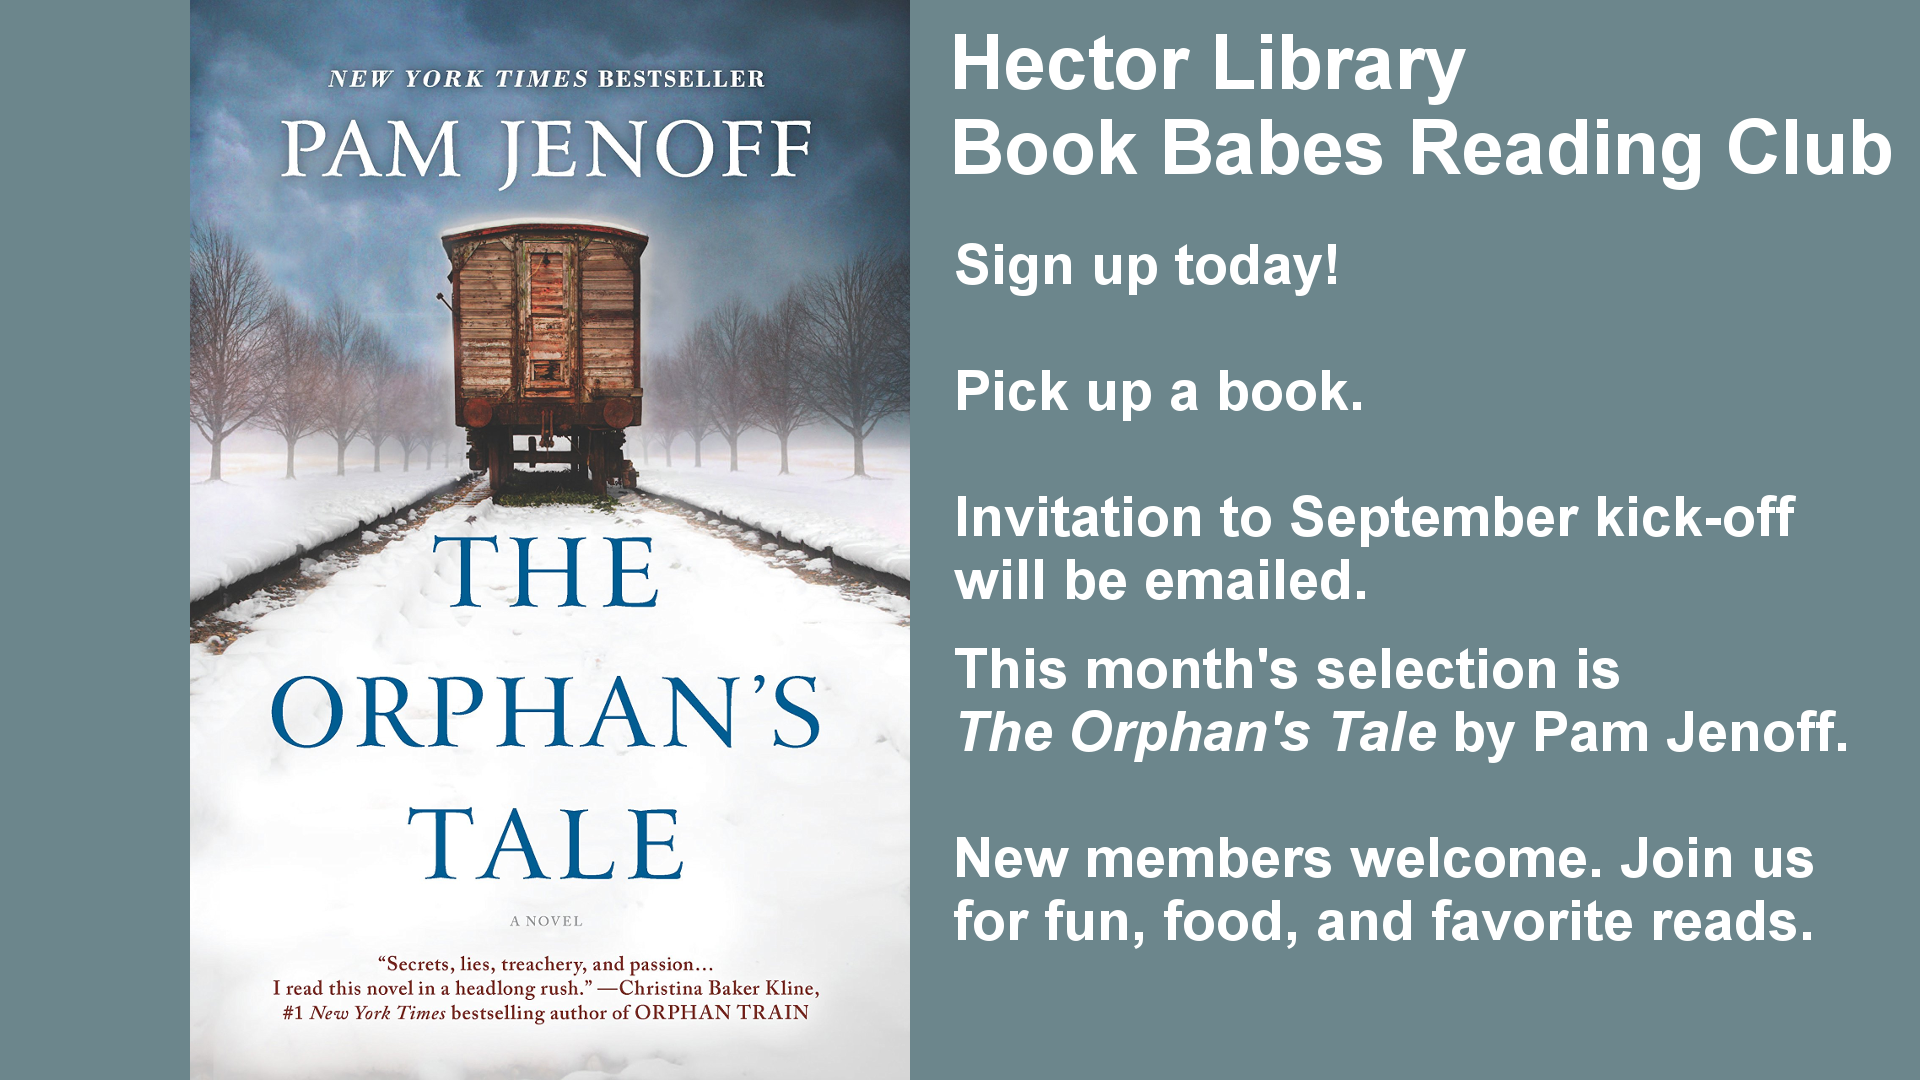 Hector Library Book Babes Reading Club. Sign up today! Pick up a book. Invitation to the September Kick-off will be emailed. This month's selection will be The Orphan's Tale by Pam Jenoff. New members are welcome. Join us for food, fun, and favorite reads.